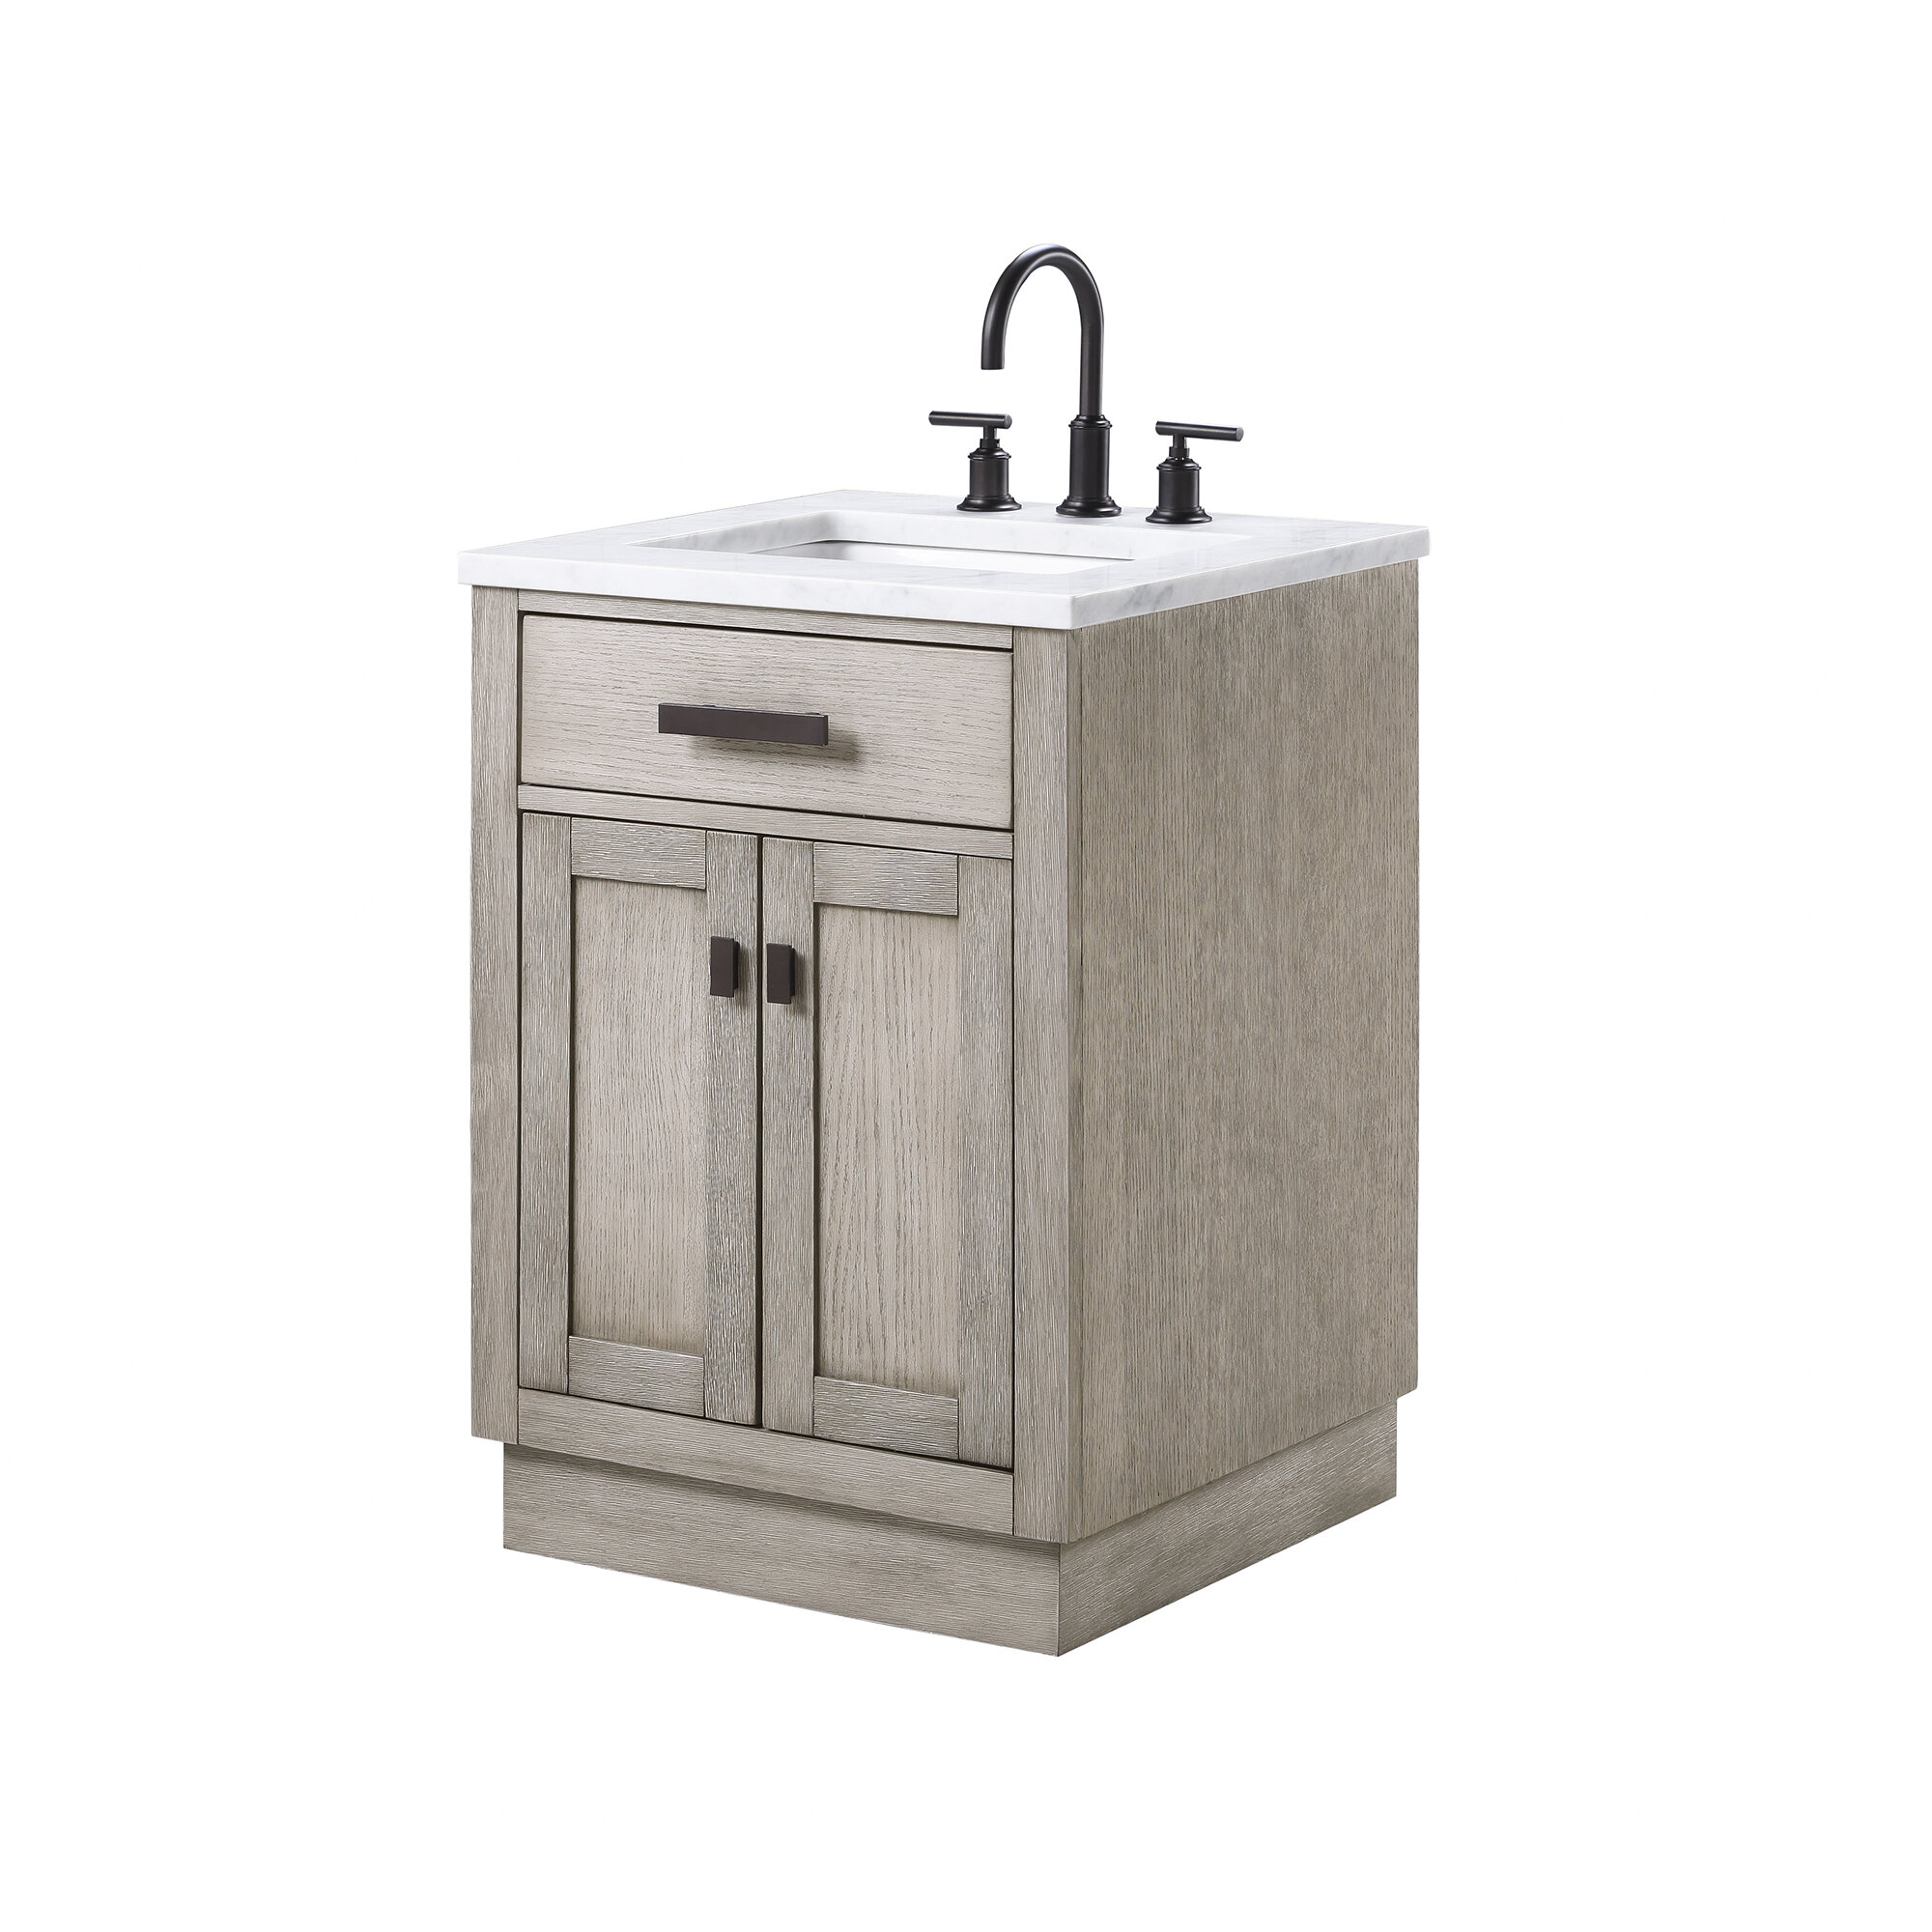 Wrought Studio Chestnut 24 Single Bathroom Vanity Reviews Wayfair